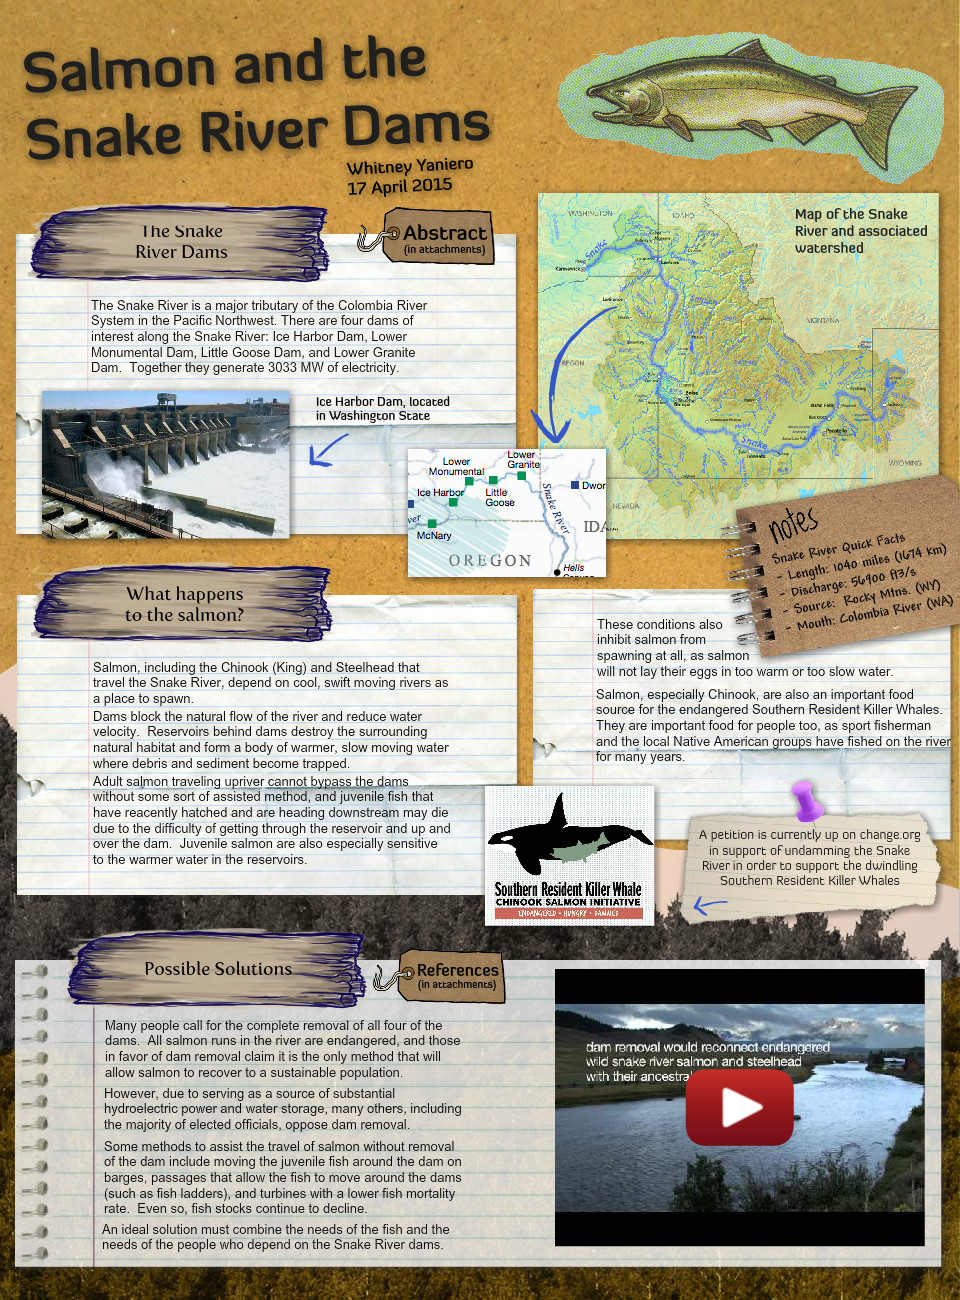 Salmon and the Snake River Dams